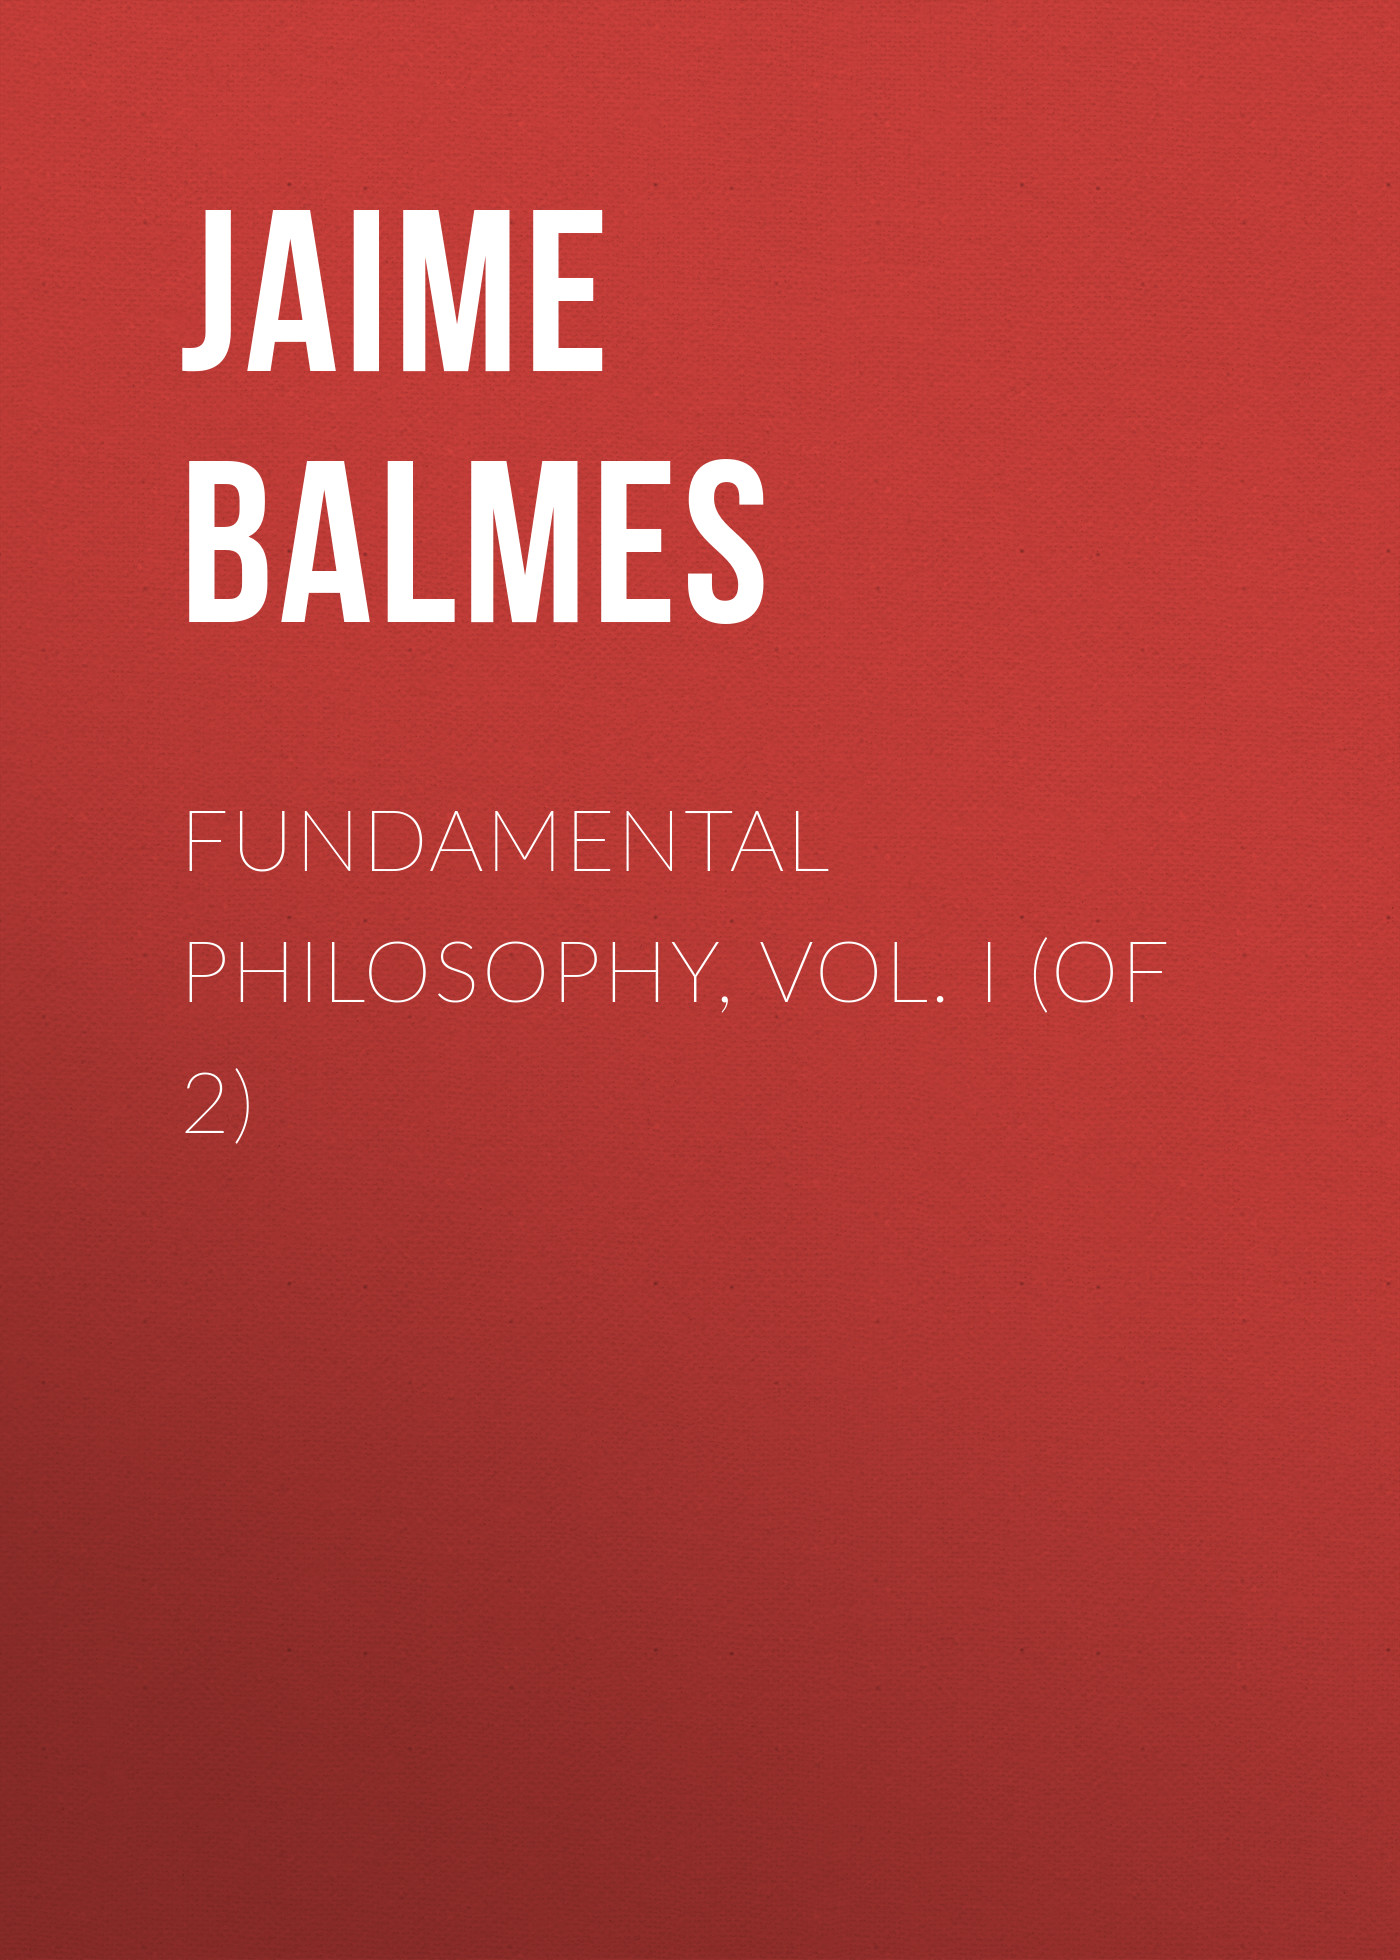 Balmes Jaime Luciano Fundamental Philosophy, Vol. I (of 2) jaime luciano balmes pio ix spanish edition